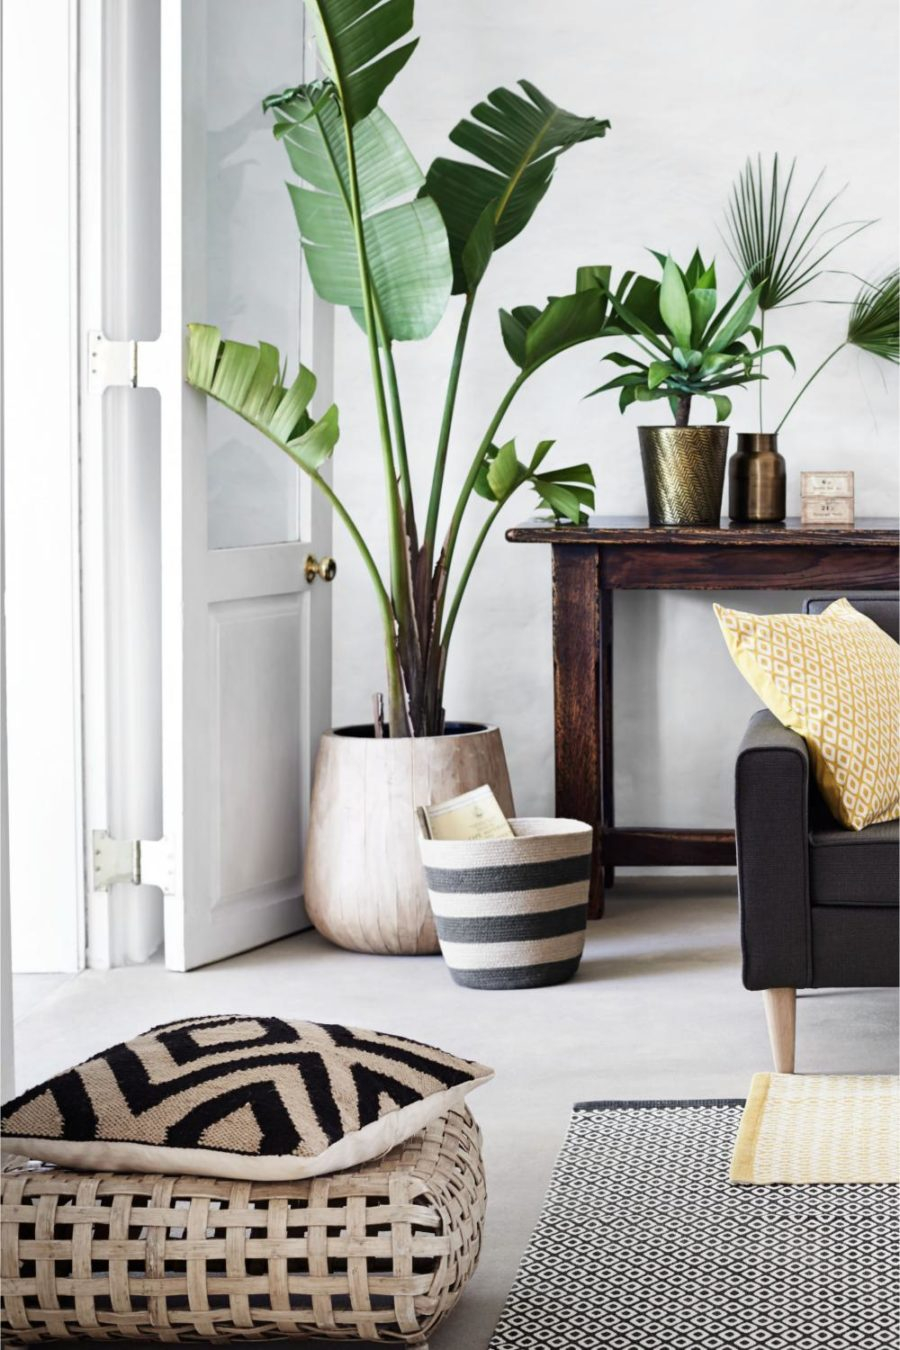 An elegant natural living room with greenery at the corner to create freshness to your room